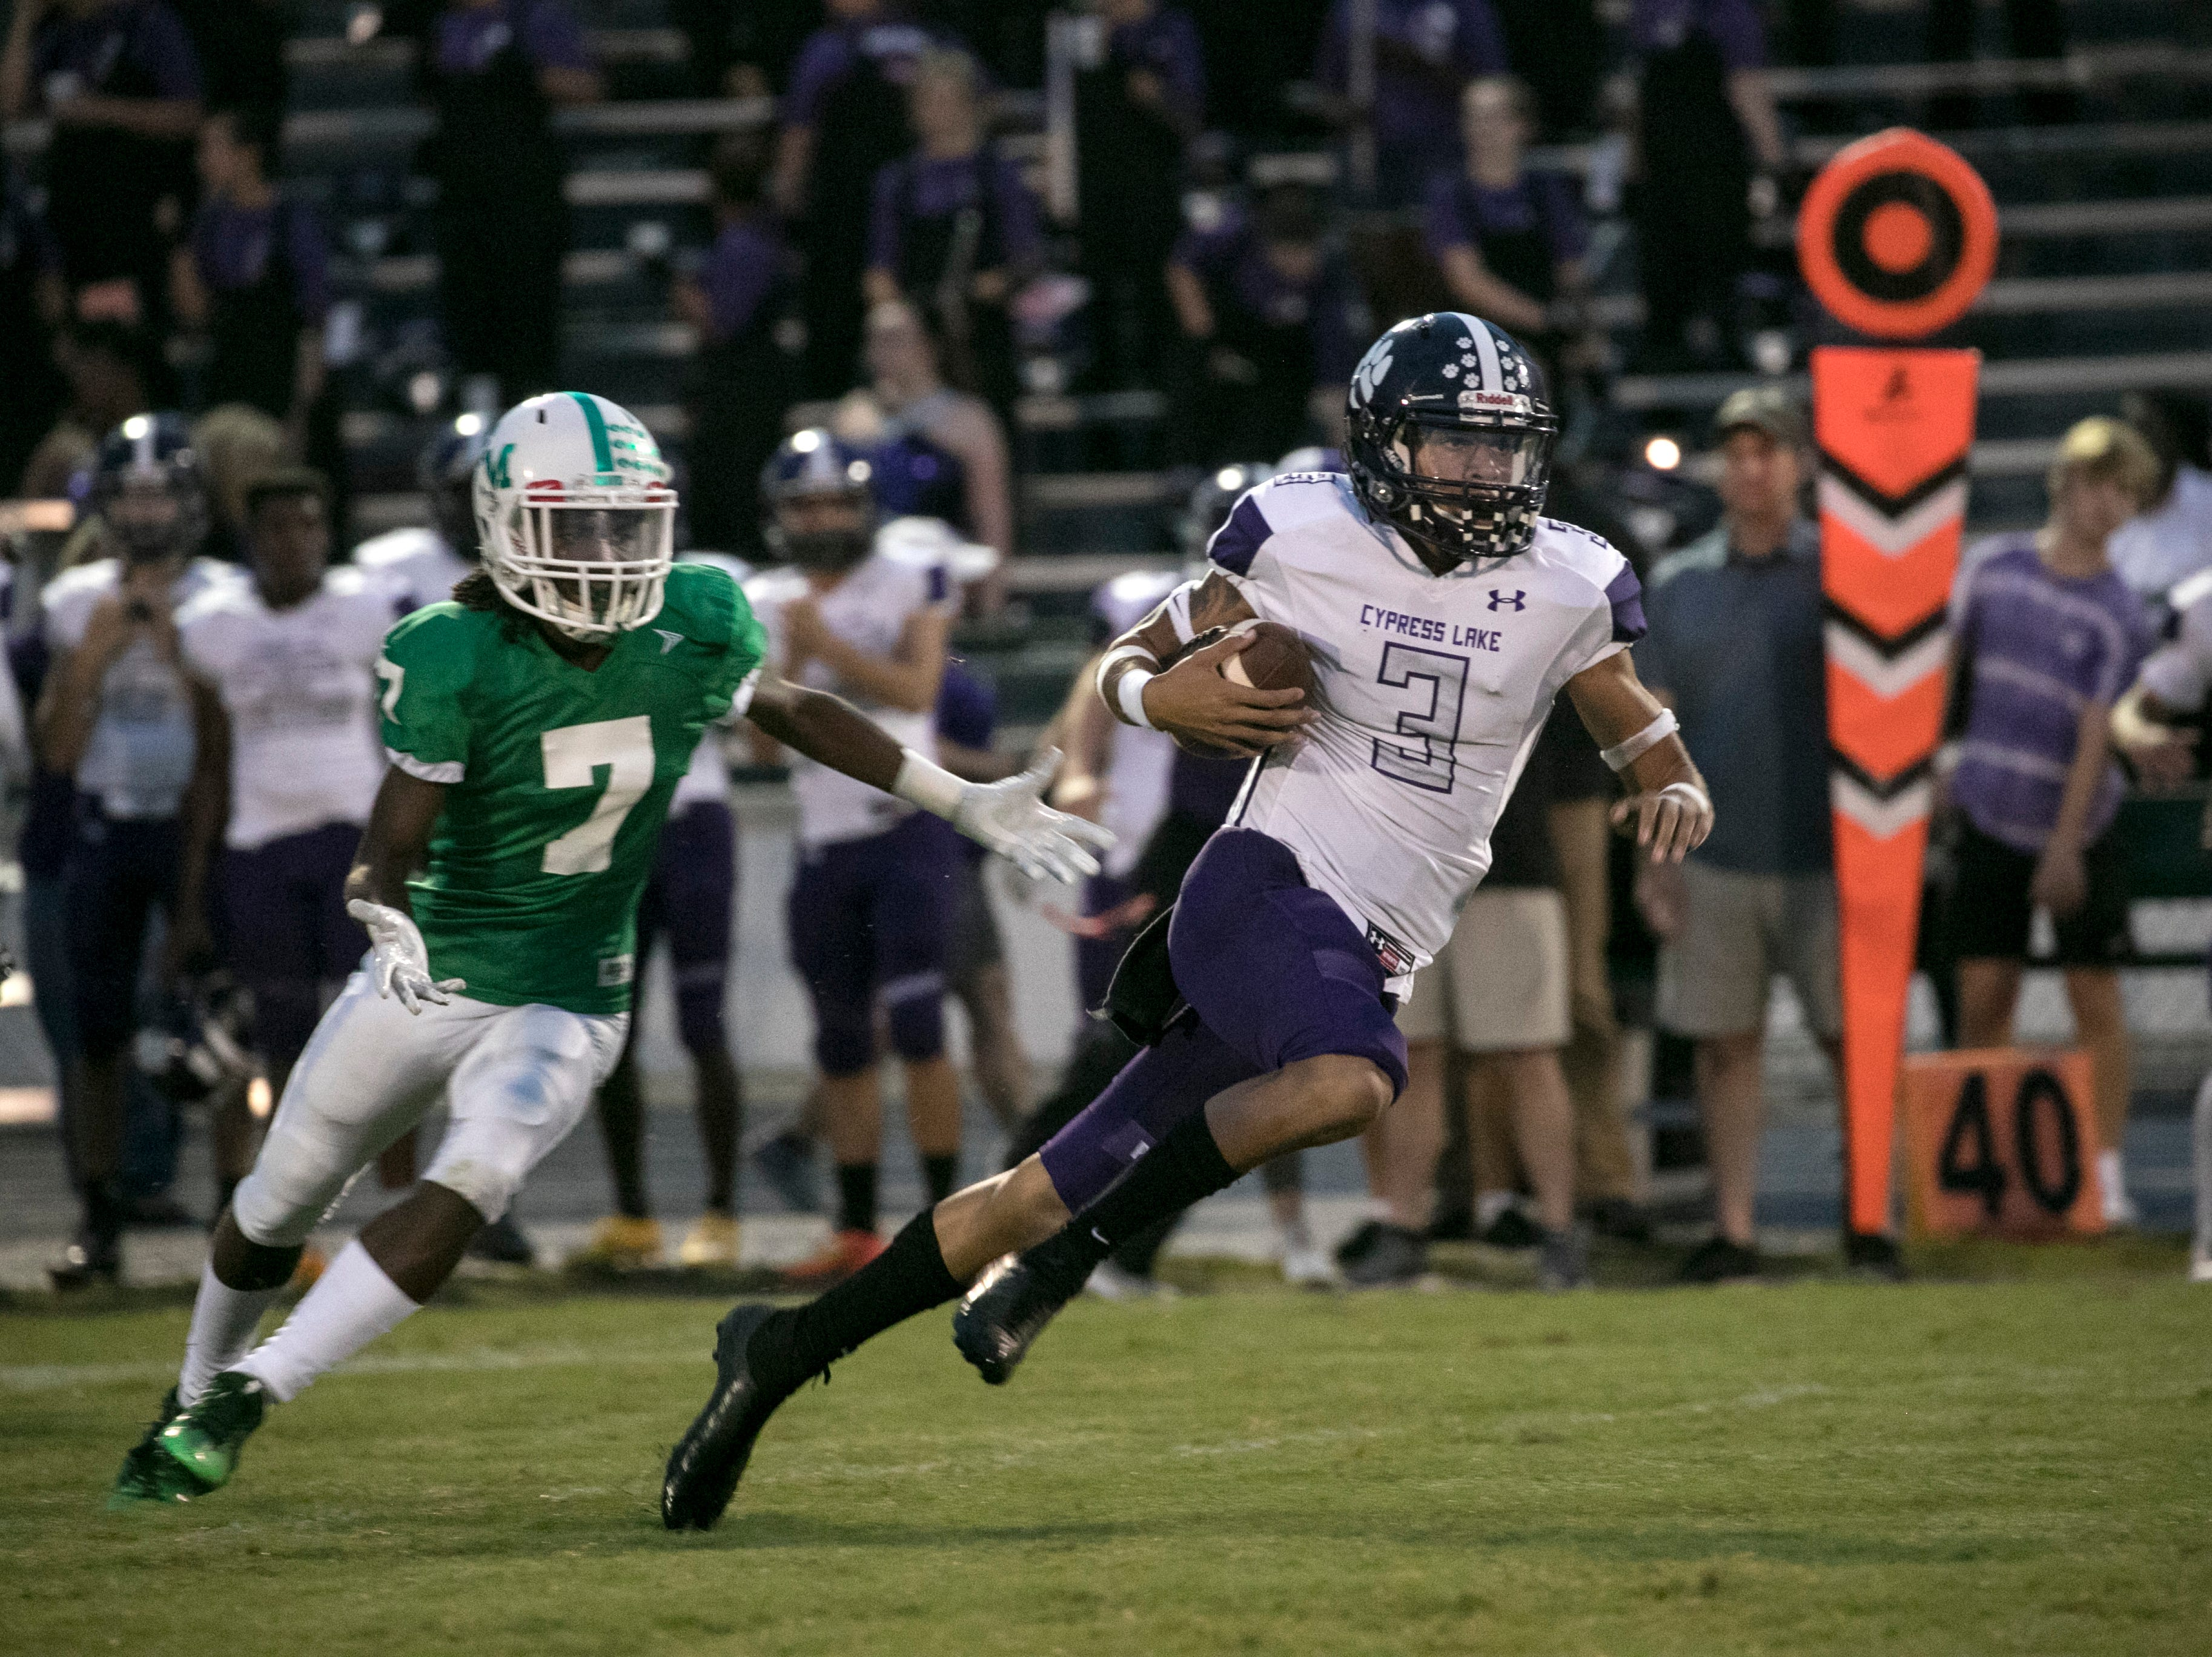 Kyrie Savoy of Cypress Lake runs for the end zone before being tackled just short of the goal line on Friday, September 7, 2018, at Fort Myers High School.